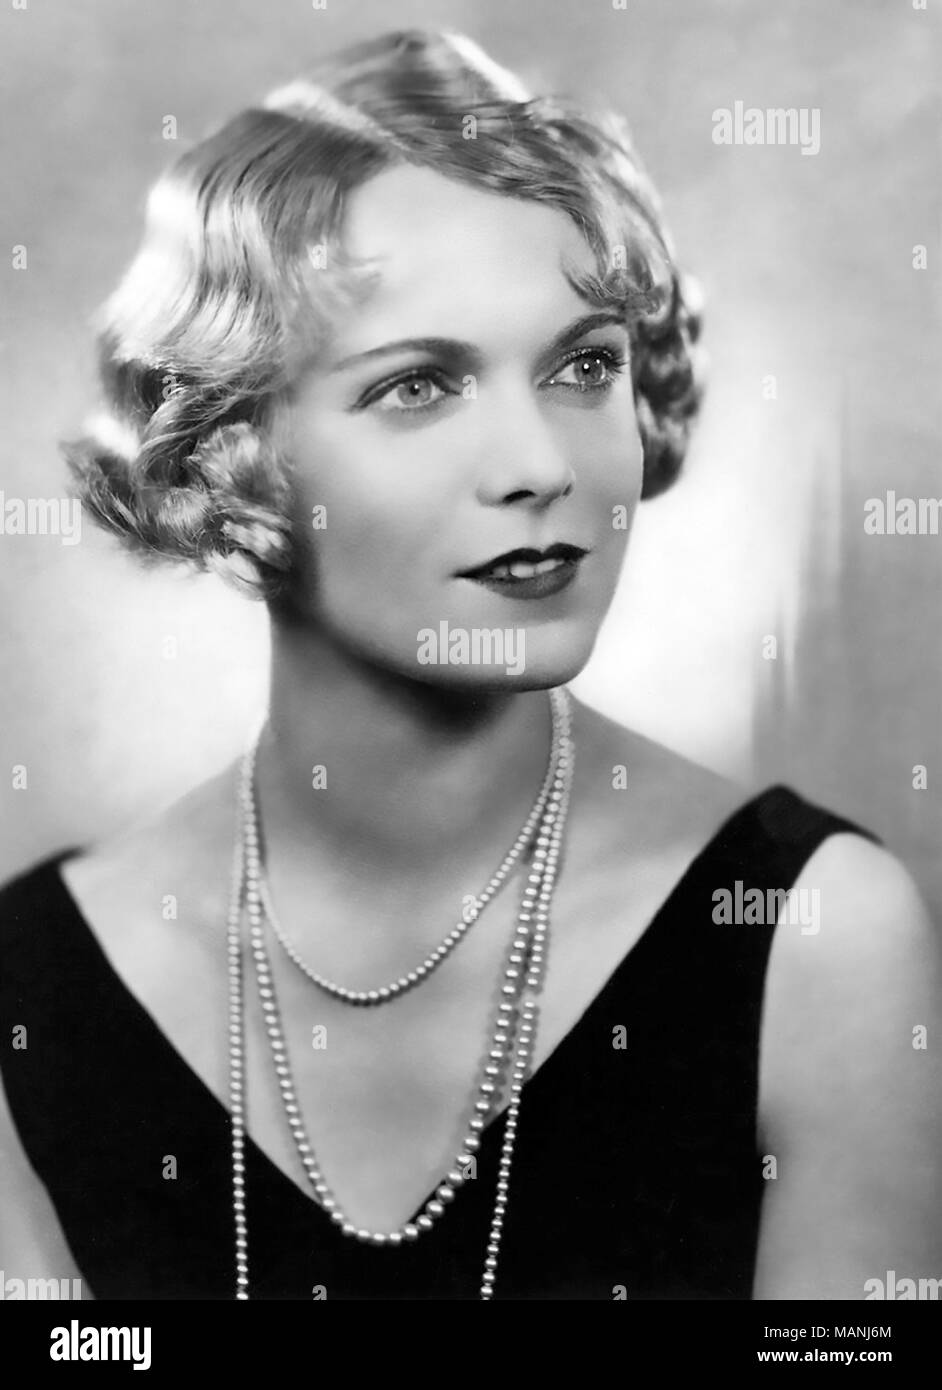 Swimsuit Anna Neagle (1904-1986) nudes (54 pictures) Topless, Snapchat, cameltoe